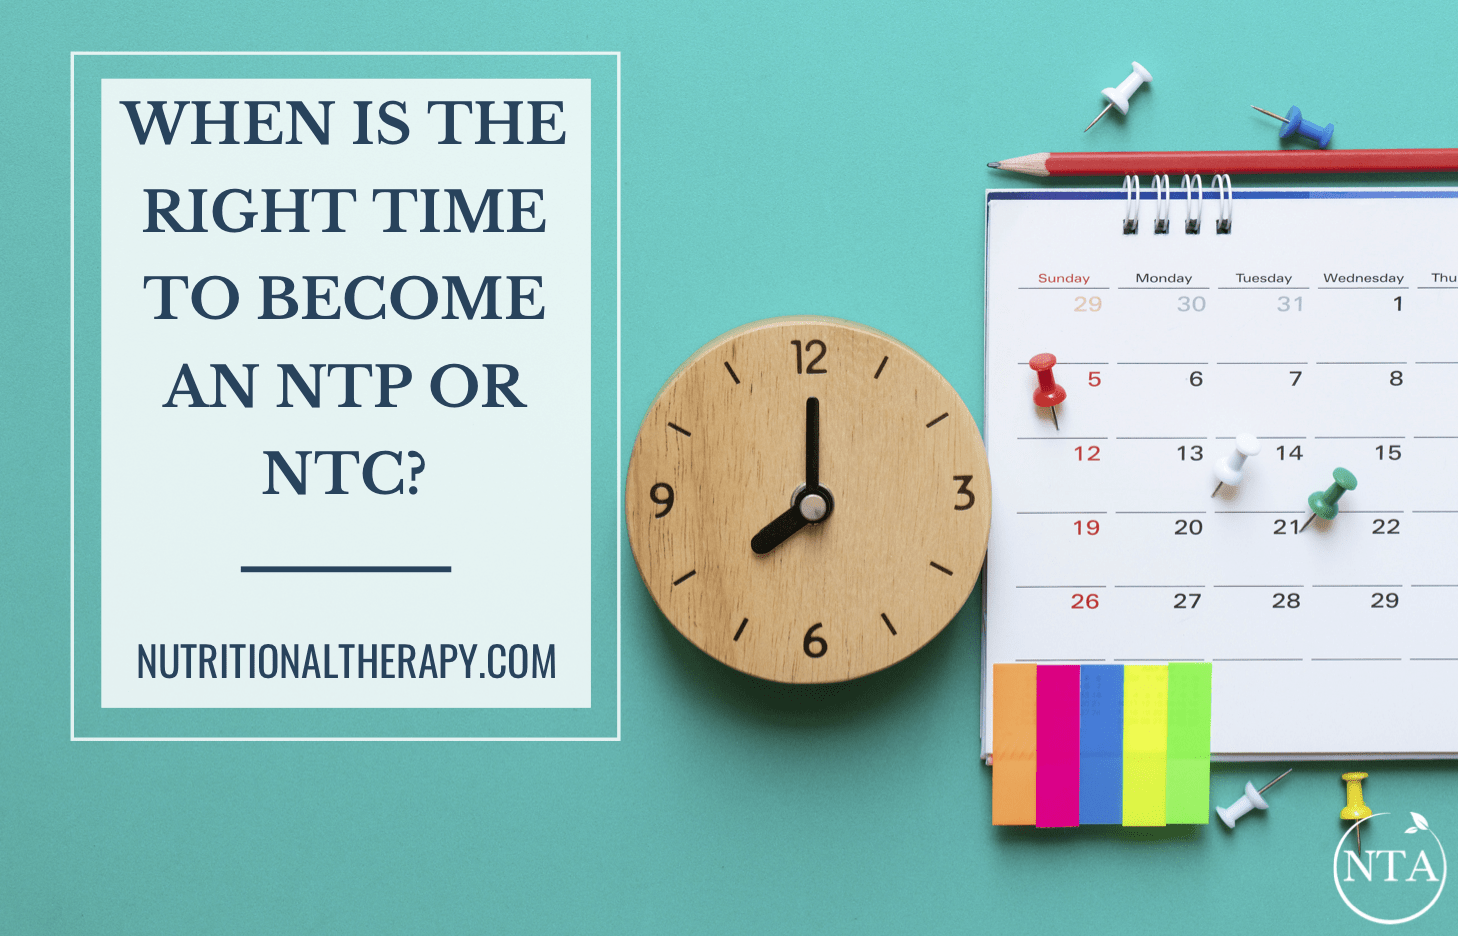 When Is The Right Time To Become An NTP Or An NTC